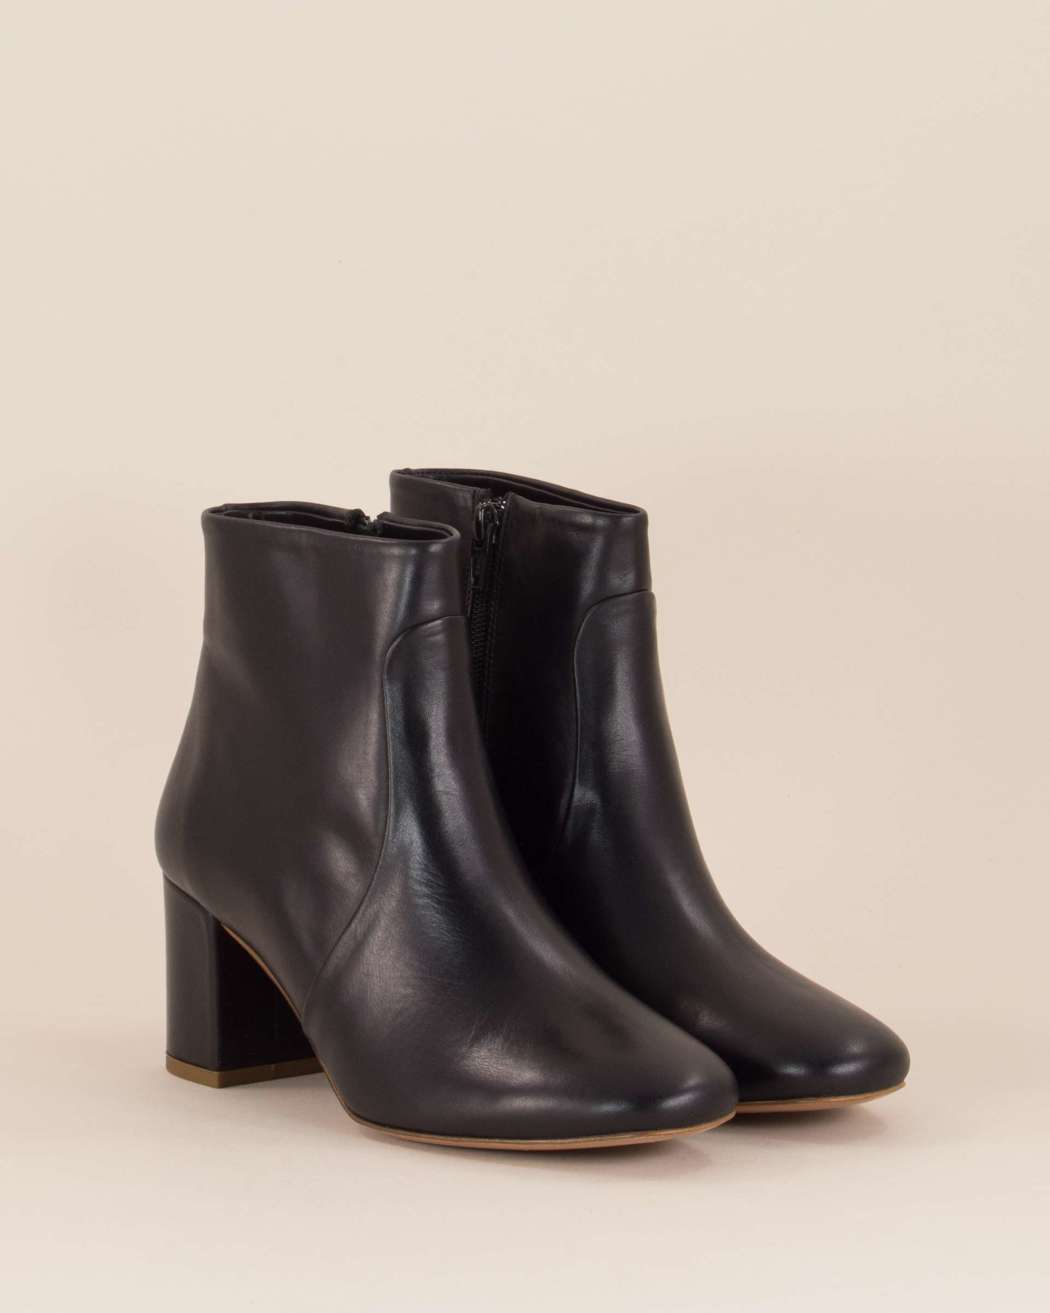 Petulia Leather Boots in Black